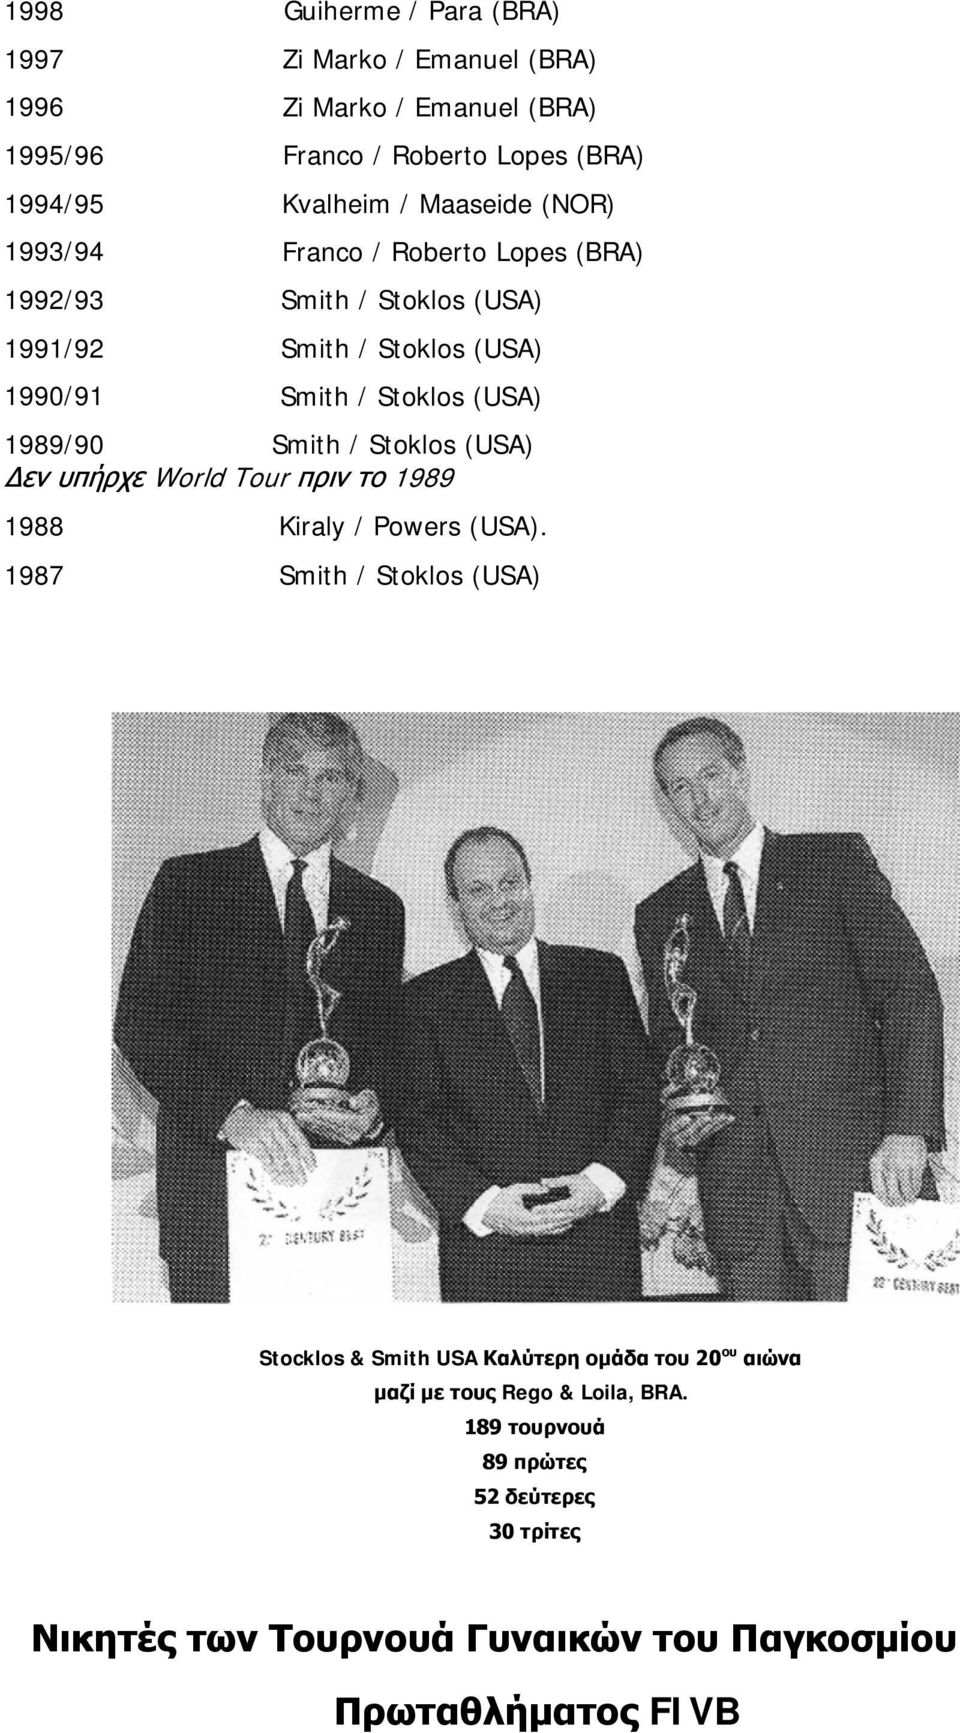 Smith / Stoklos (USA) Δεν υπήρχε World Tour πριν το 1989 1988 Kiraly / Powers (USA).